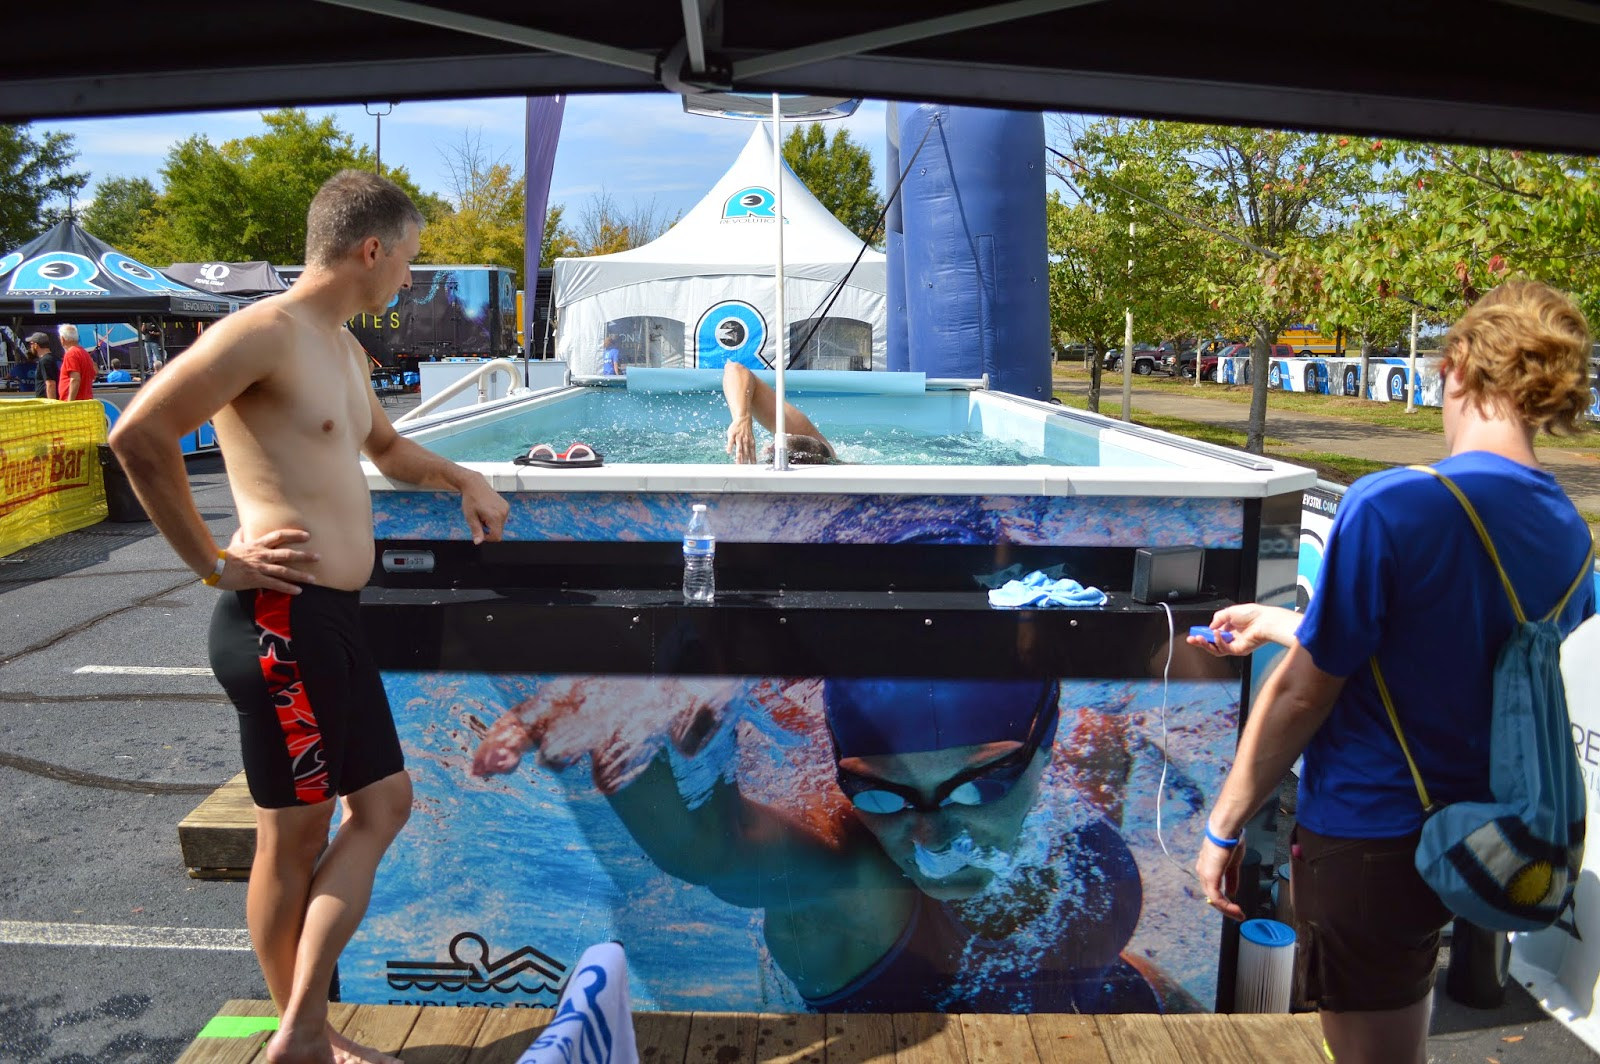 Onlookers watch a test-swimmer in the Endless Pool at the REV3 triathlon Expo in Anderson, SC, on October 11, 2014.